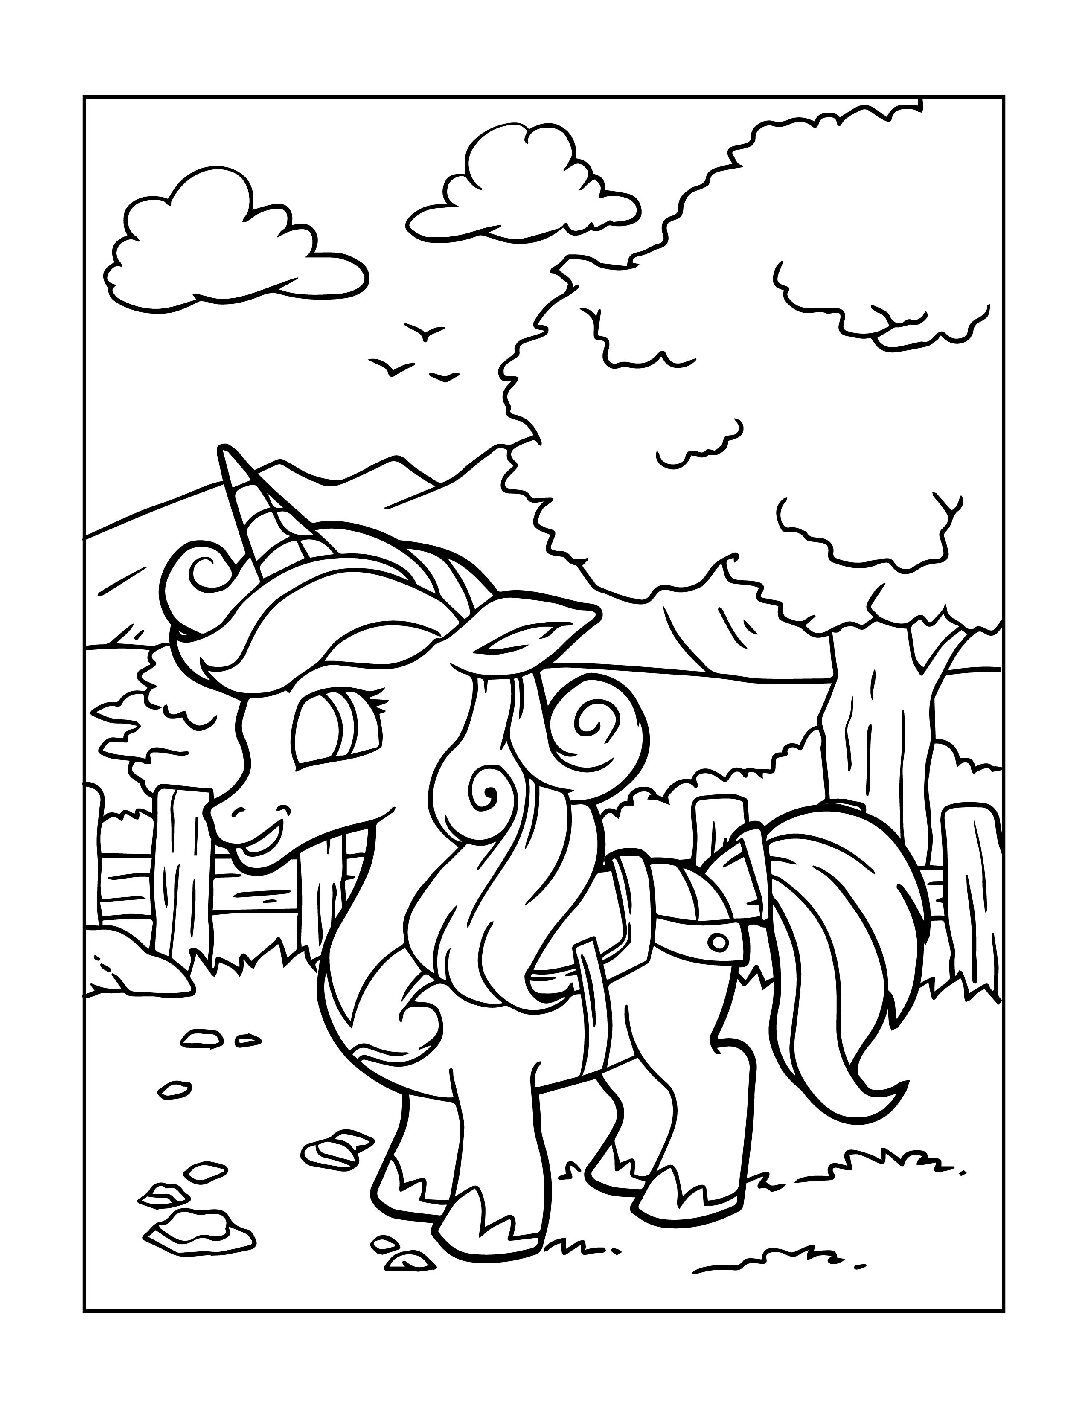 Coloring-Pages-Unicorns-13-pdf Free Printable Unicorn Colouring Pages